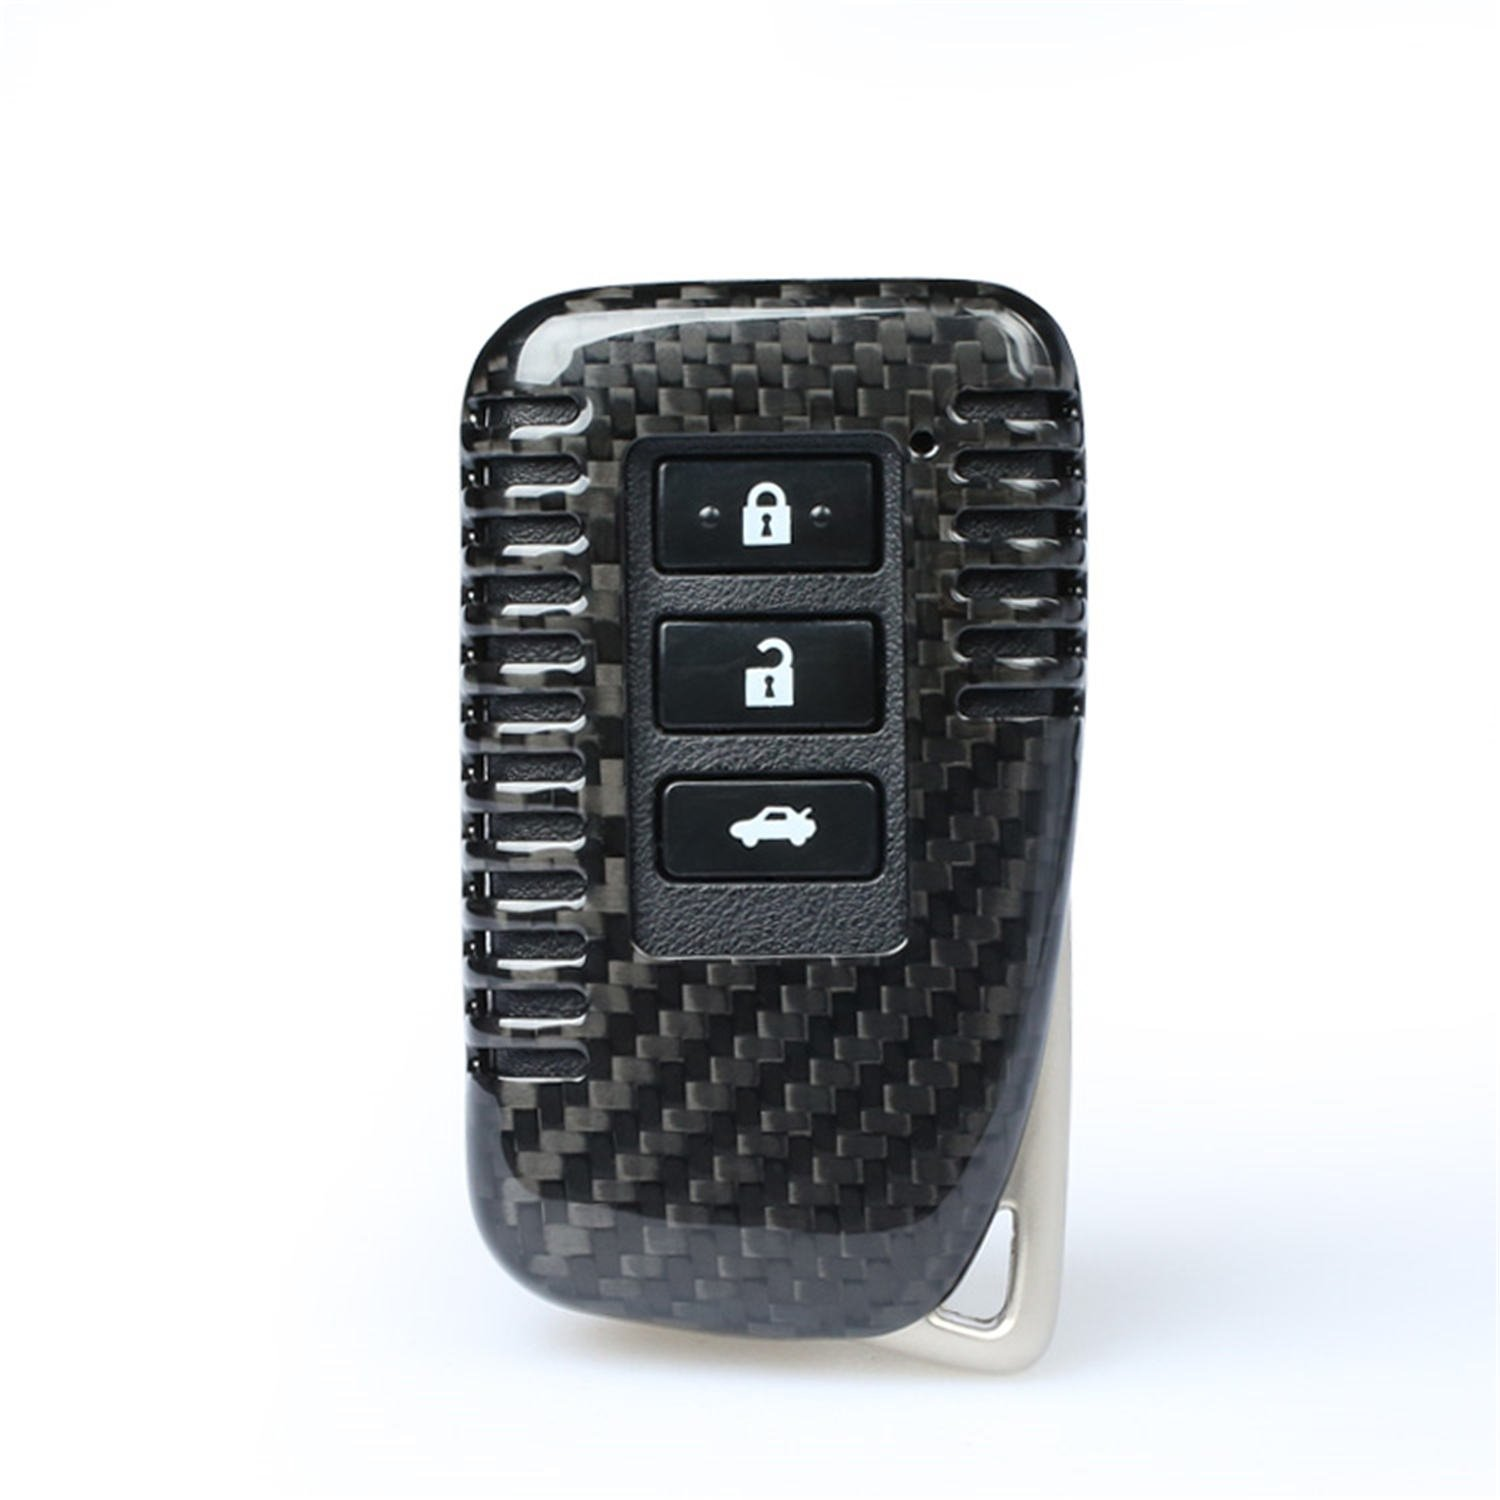 4 Buttons Red Genuine Carbon Fiber Cover For Lexus ES GS IS LX NX RX RC RC-F Smart Keyless Fob Remote Key 100/% Carbon Fiber Case For Lexus Key Fob Mens Car Key Fob Case Womens Fob Cover